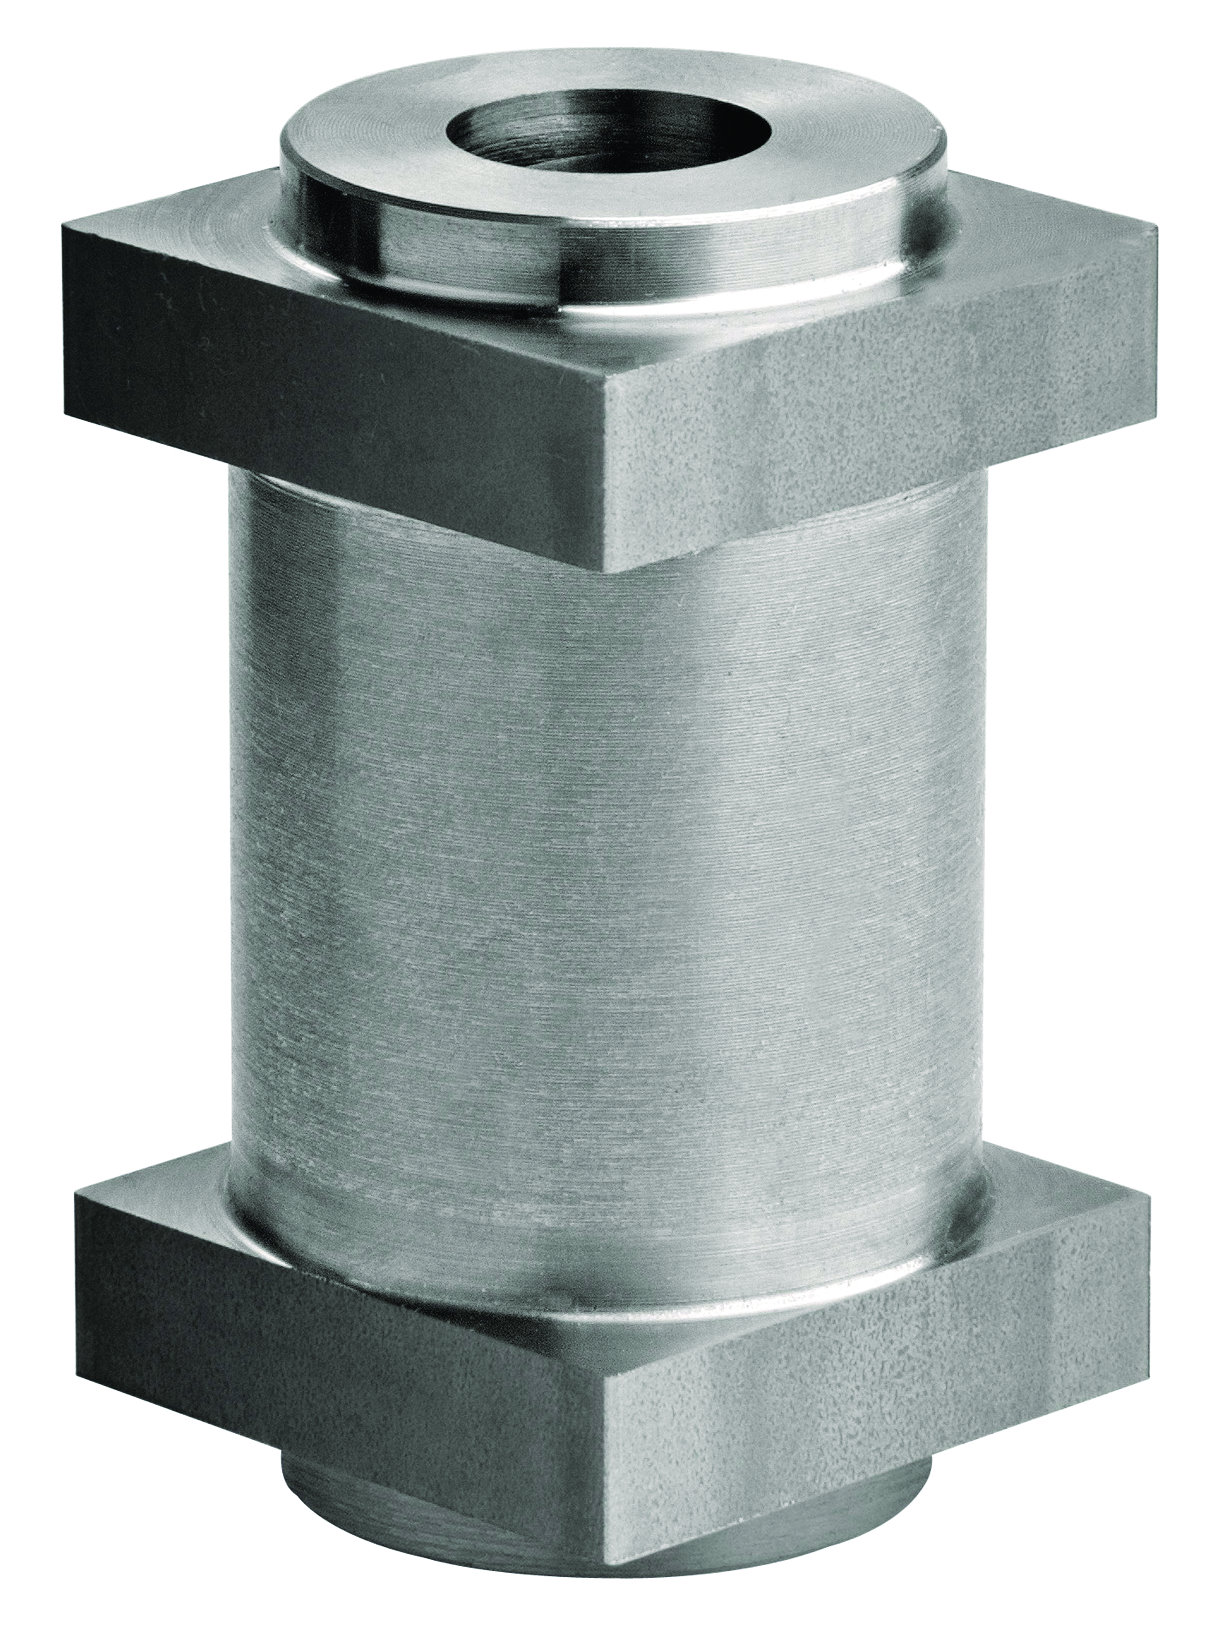 Holed Pivot w/Square Base for Clamp Hinge item 180-M18